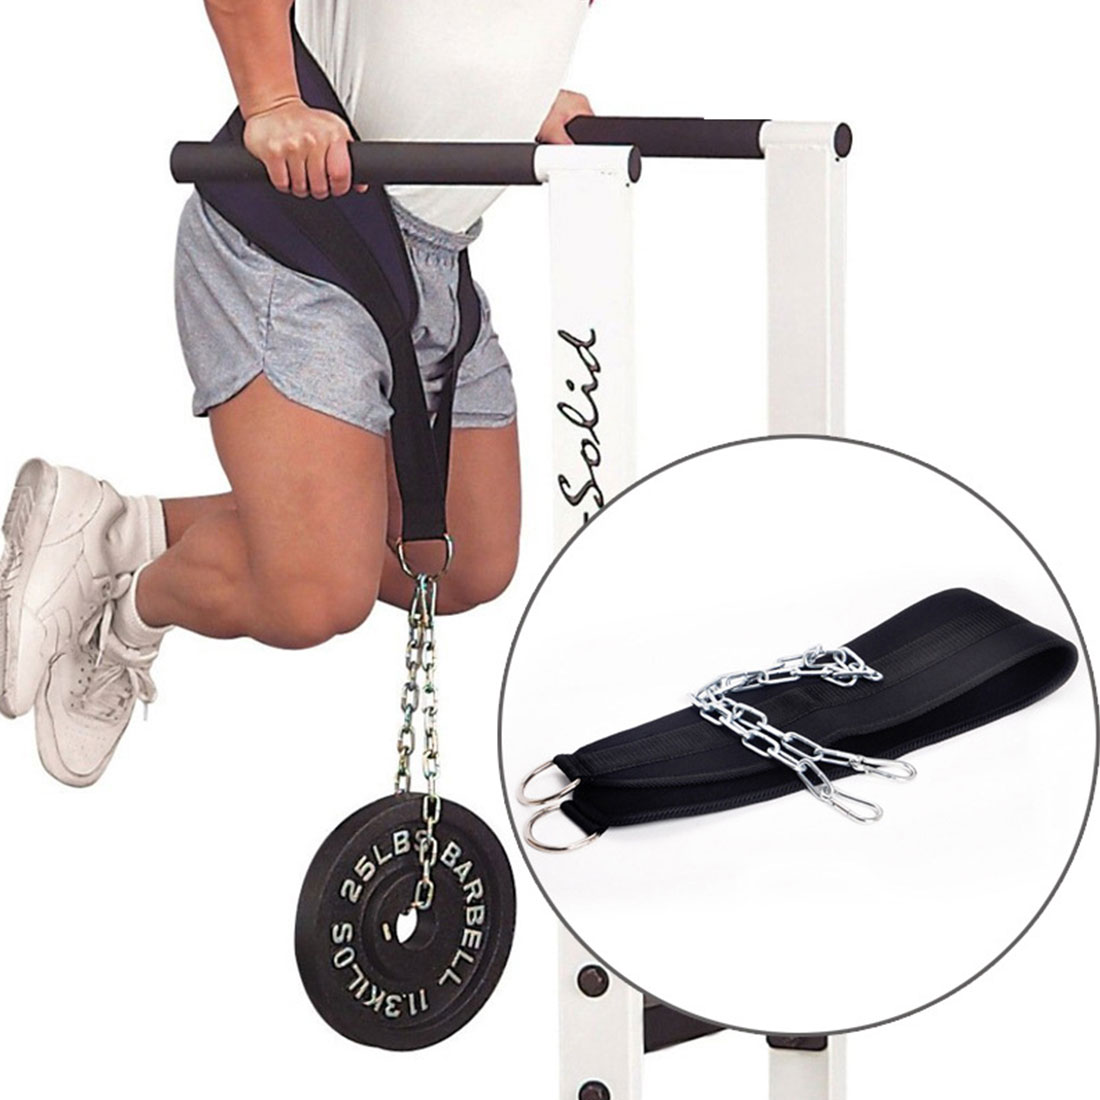 Hot New Fitness Equipment Weight Lifting Belt Gym Body Waist Strength Training Power Building Dipping Chain Pull Up